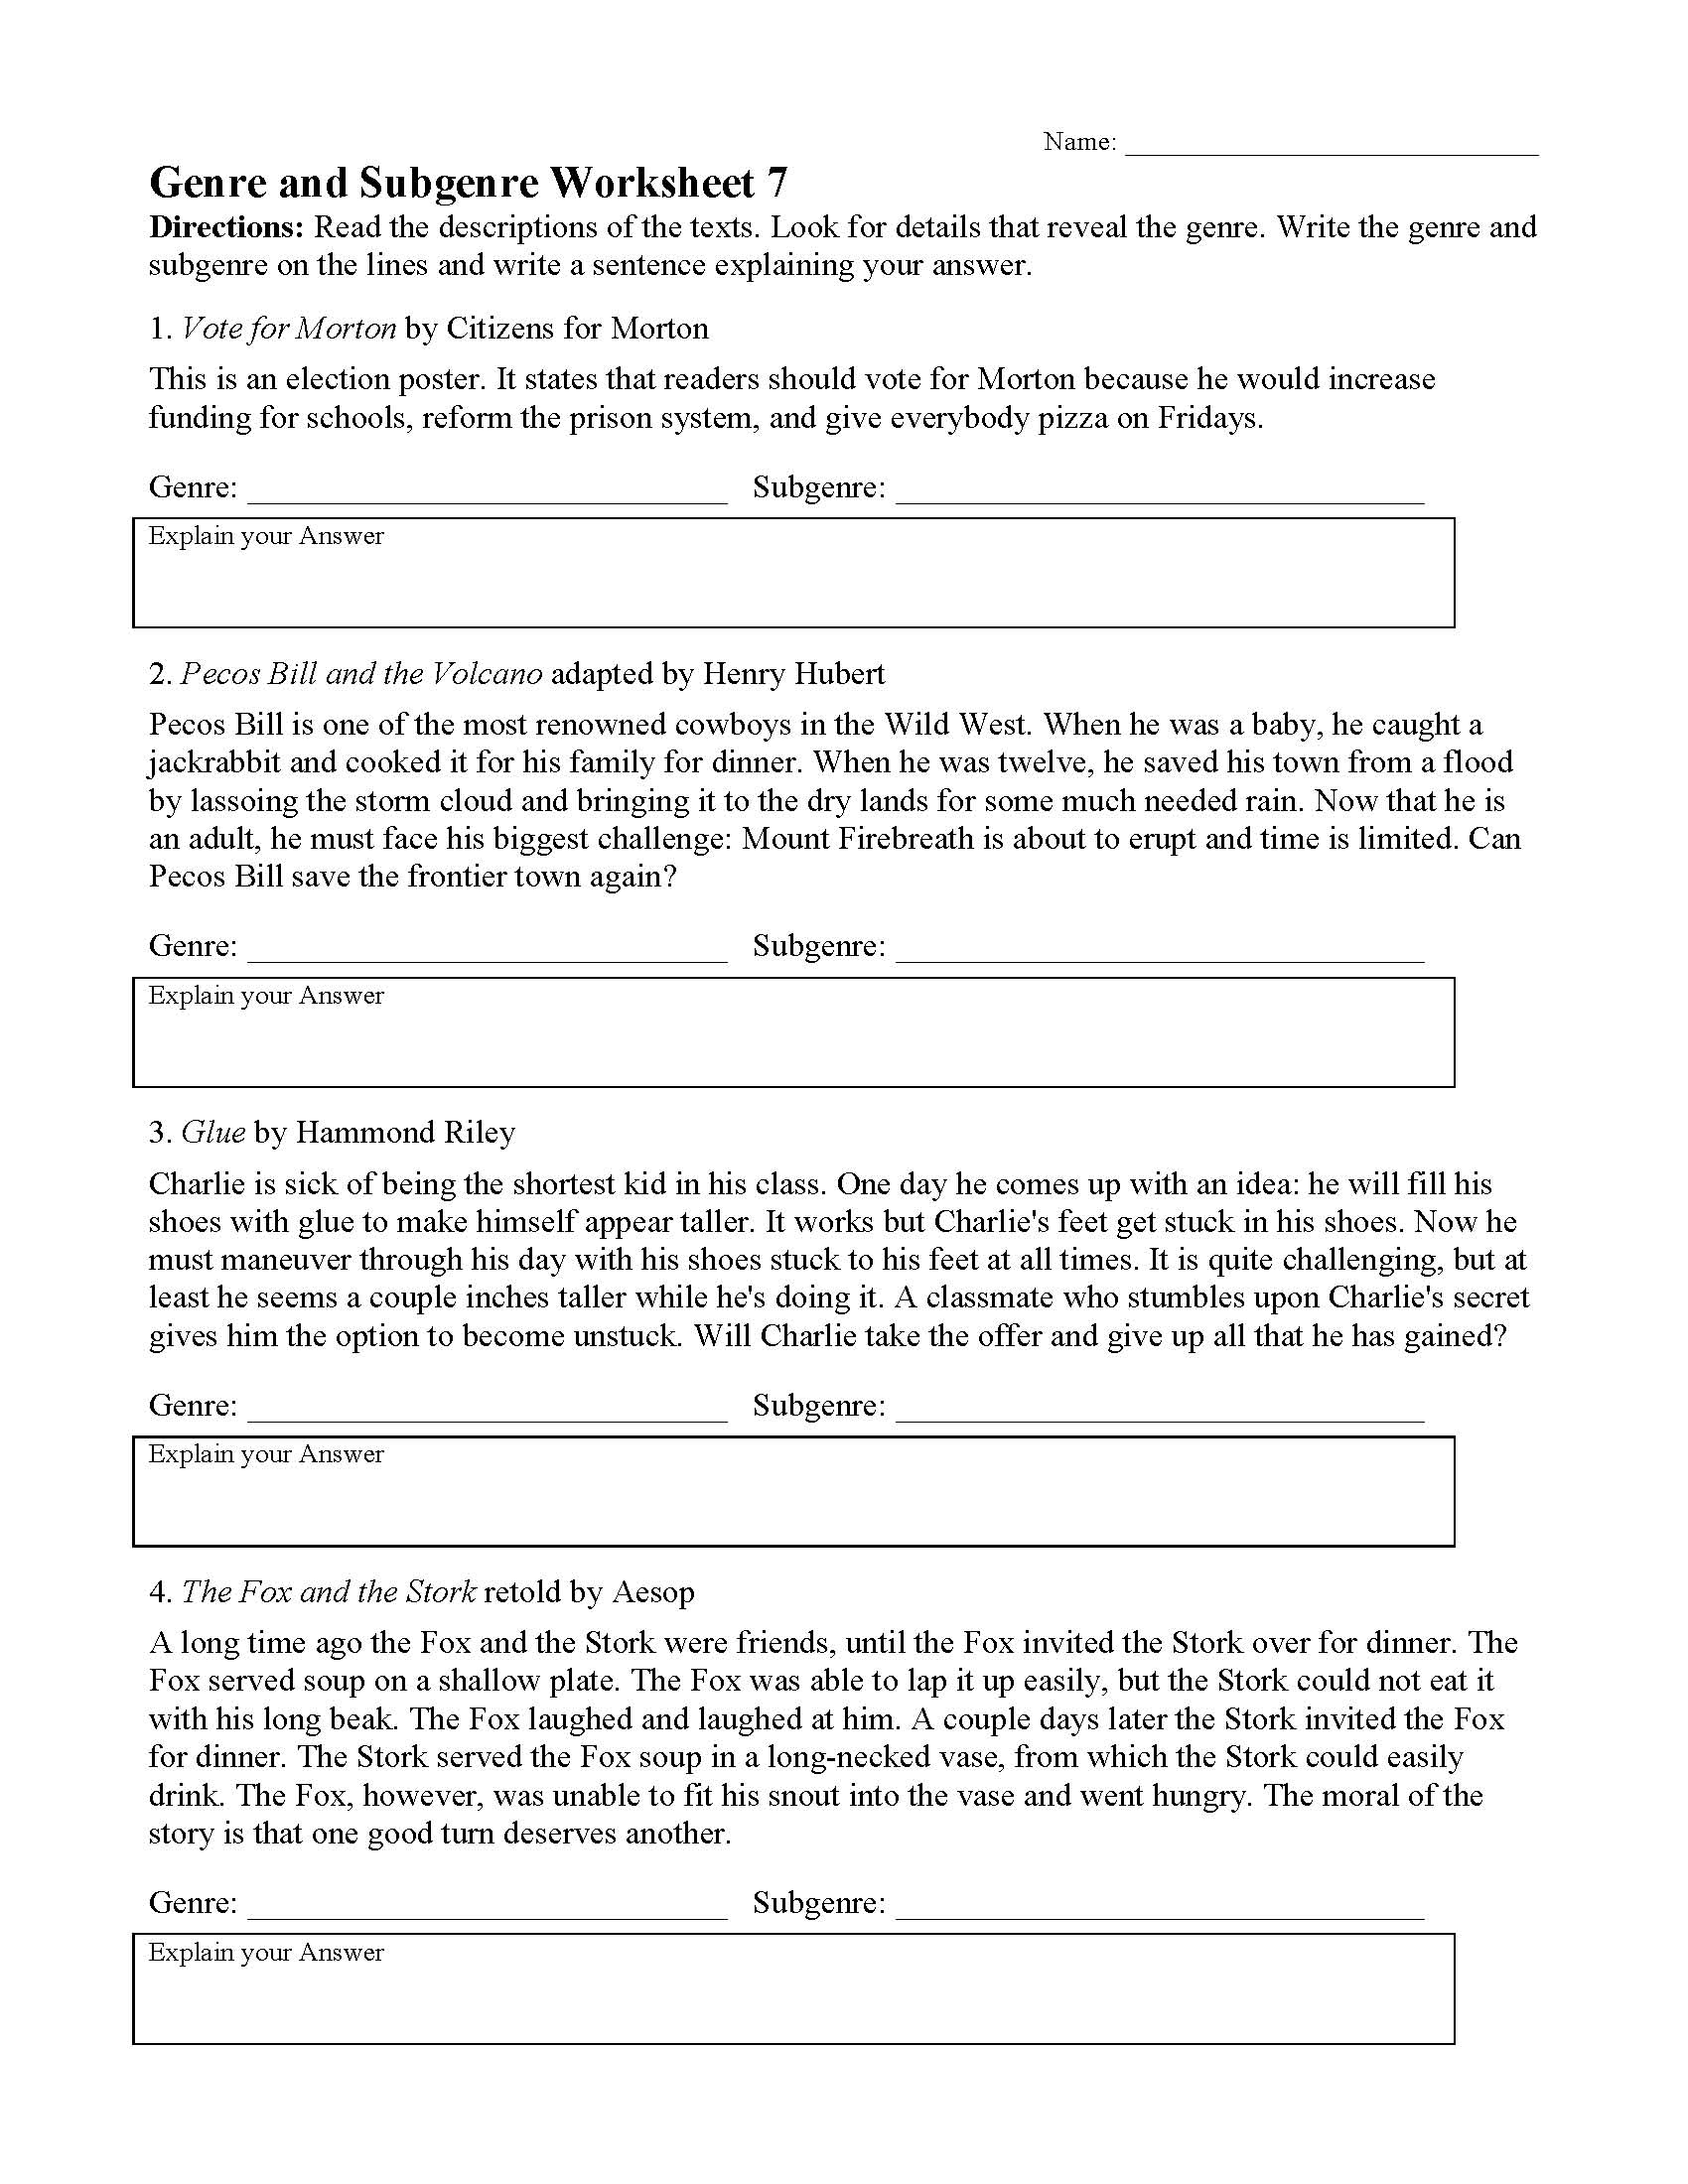 Genre Worksheet 7